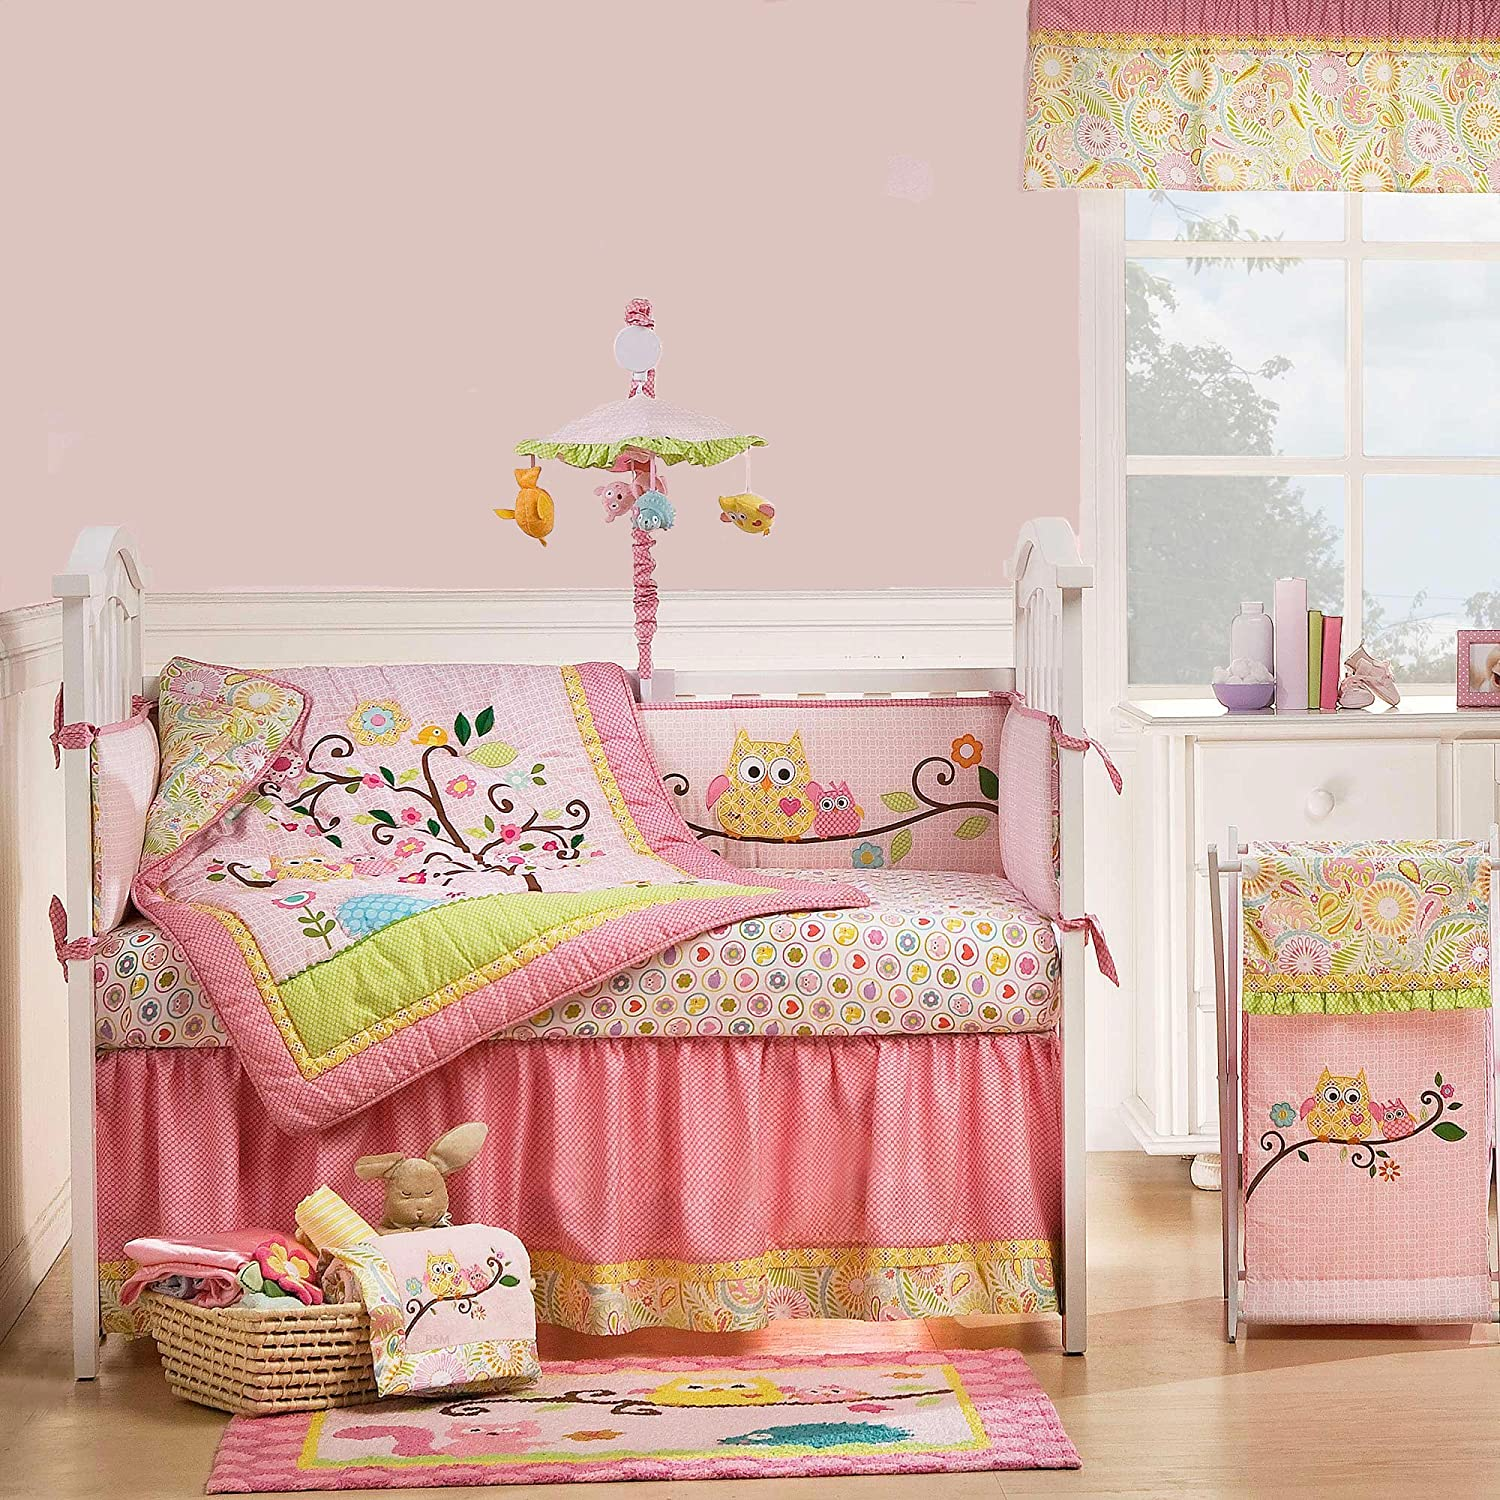 mint cribs herringbone bedding add loading product quilt baby peach to and lottie wishlist reminisce crib crop da